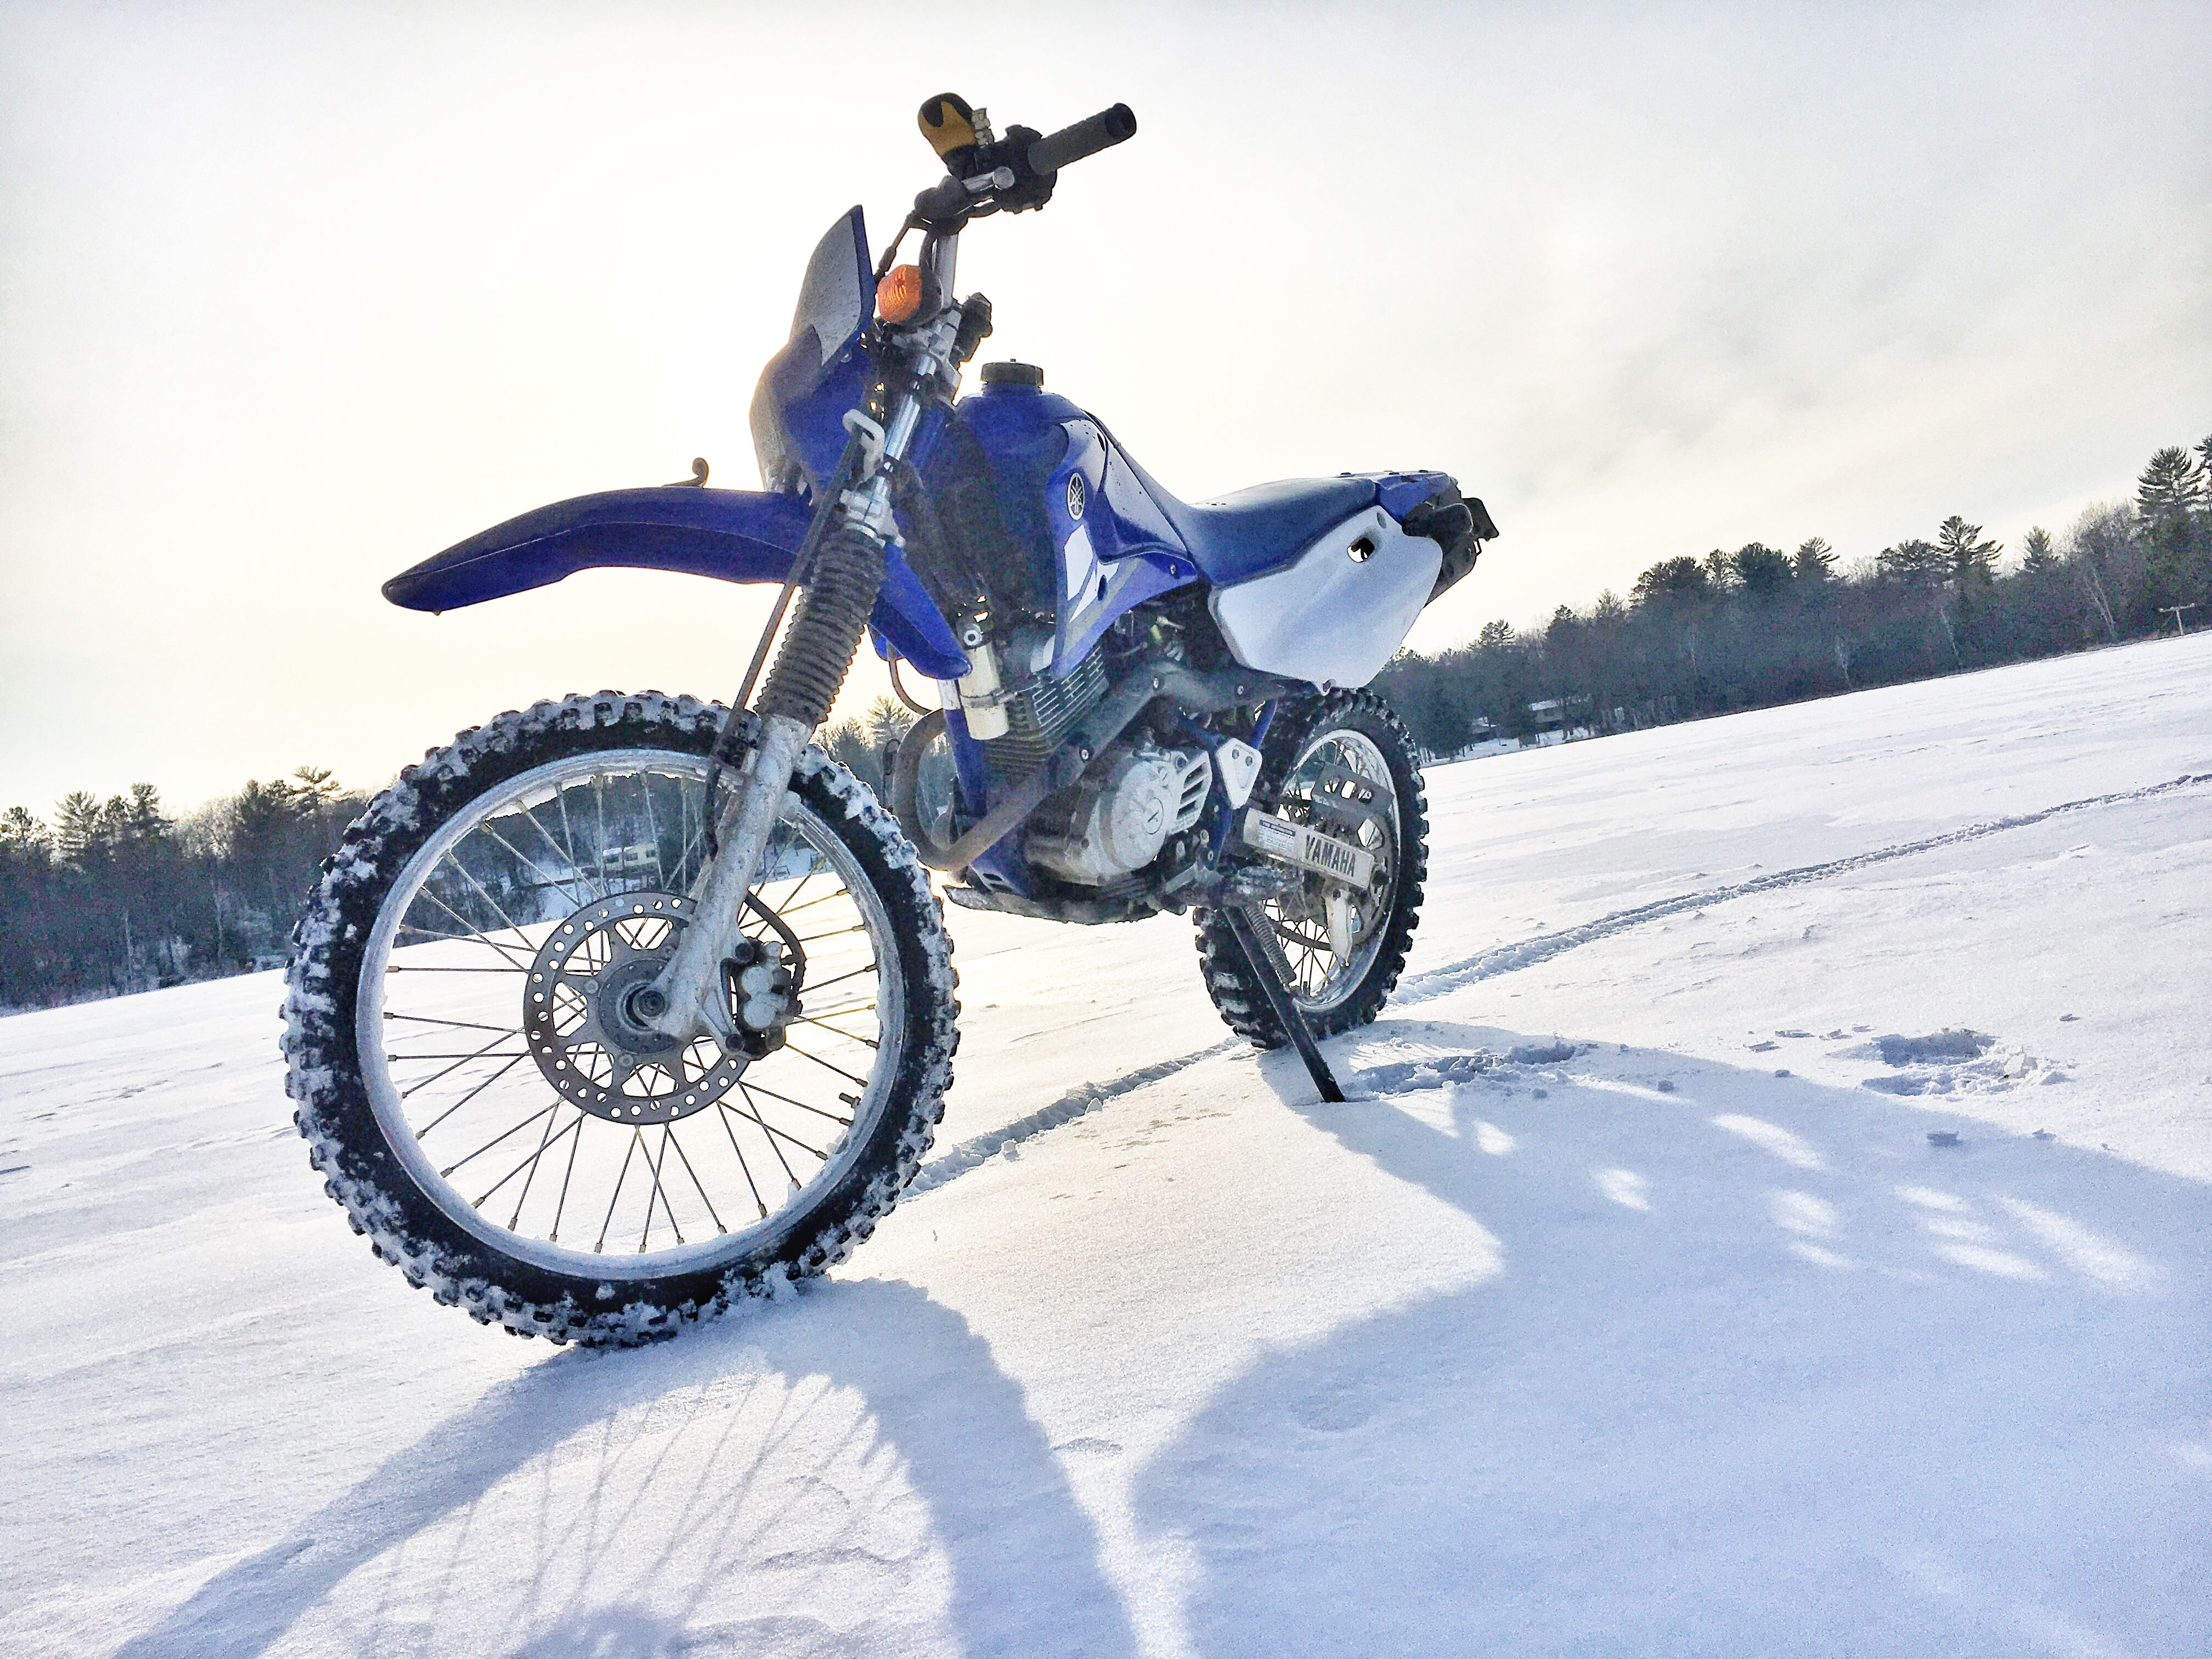 hight resolution of the lake cruising yamaha ttr 125l makes heading back to the cottage a breeze after a long day on the ice